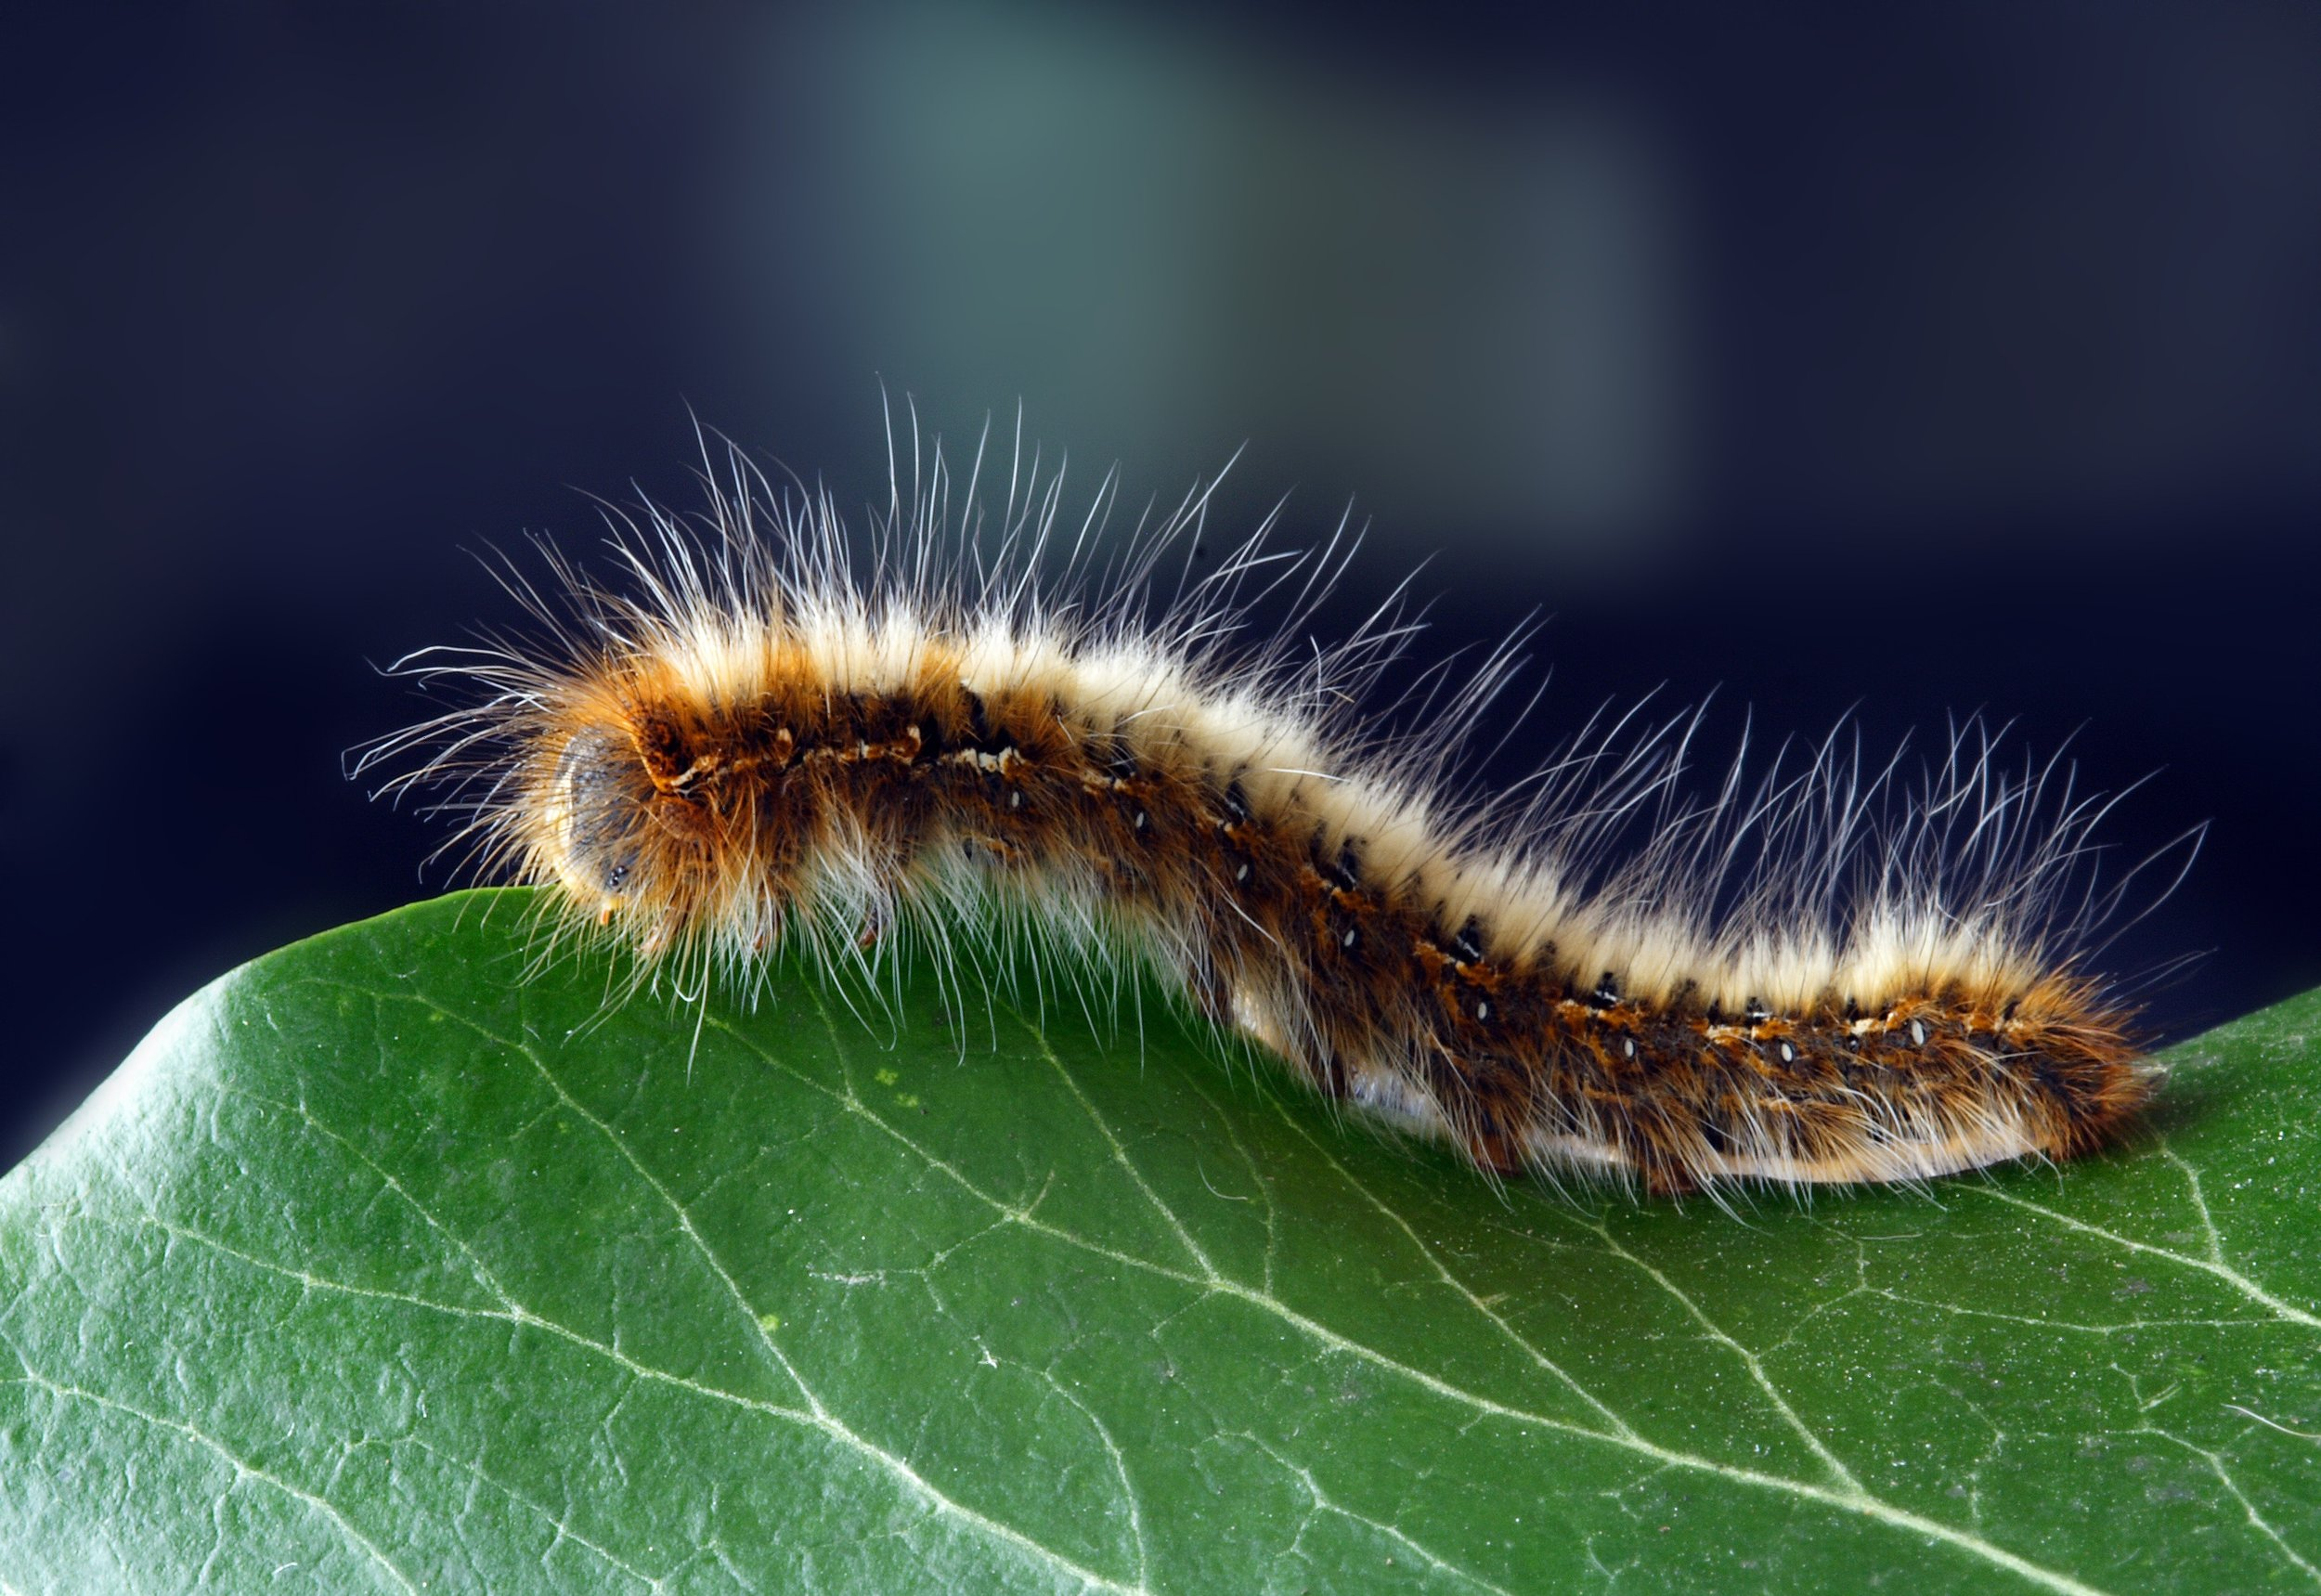 caterpillar-close-up-hairy-219938.jpg